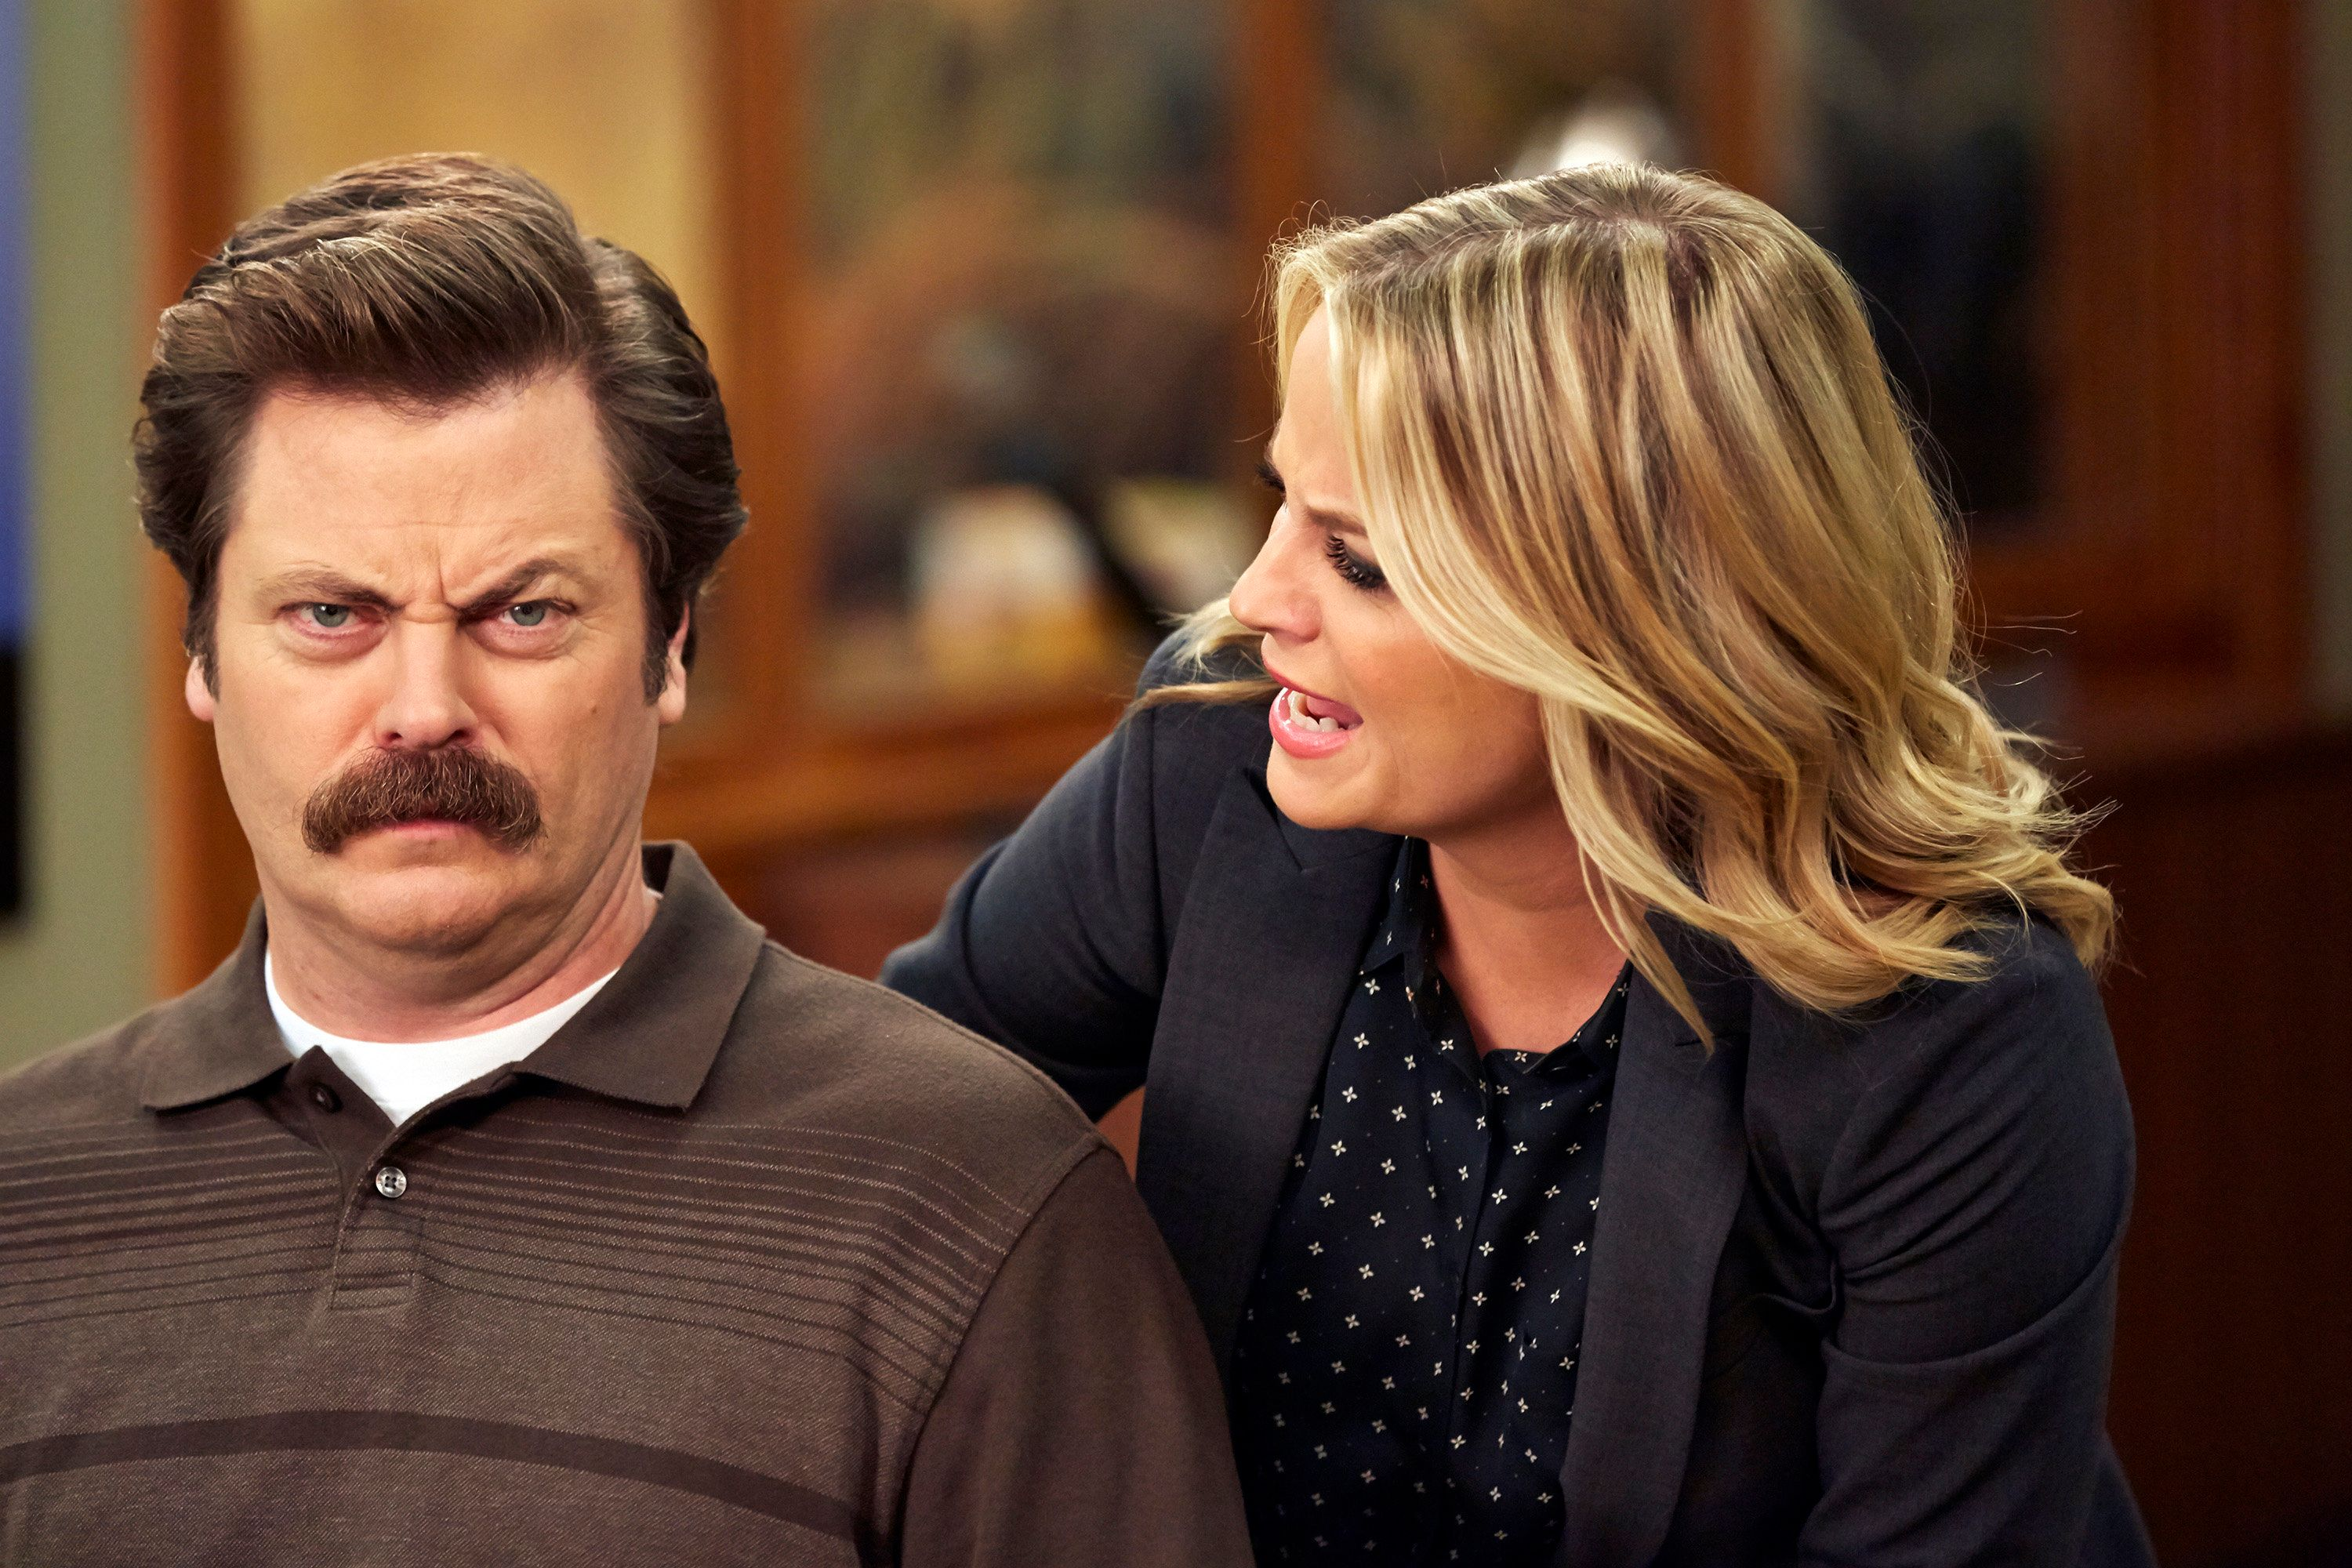 PARKS AND RECREATION -- 'Funkin' Gonuts' Episode 704 -- Pictured: (l-r) Nick Offerman as Ron Swanson, Amy Poehler as Leslie Knope -- (Photo by: Ben Cohen/NBC/NBCU Photo Bank via Getty Images)